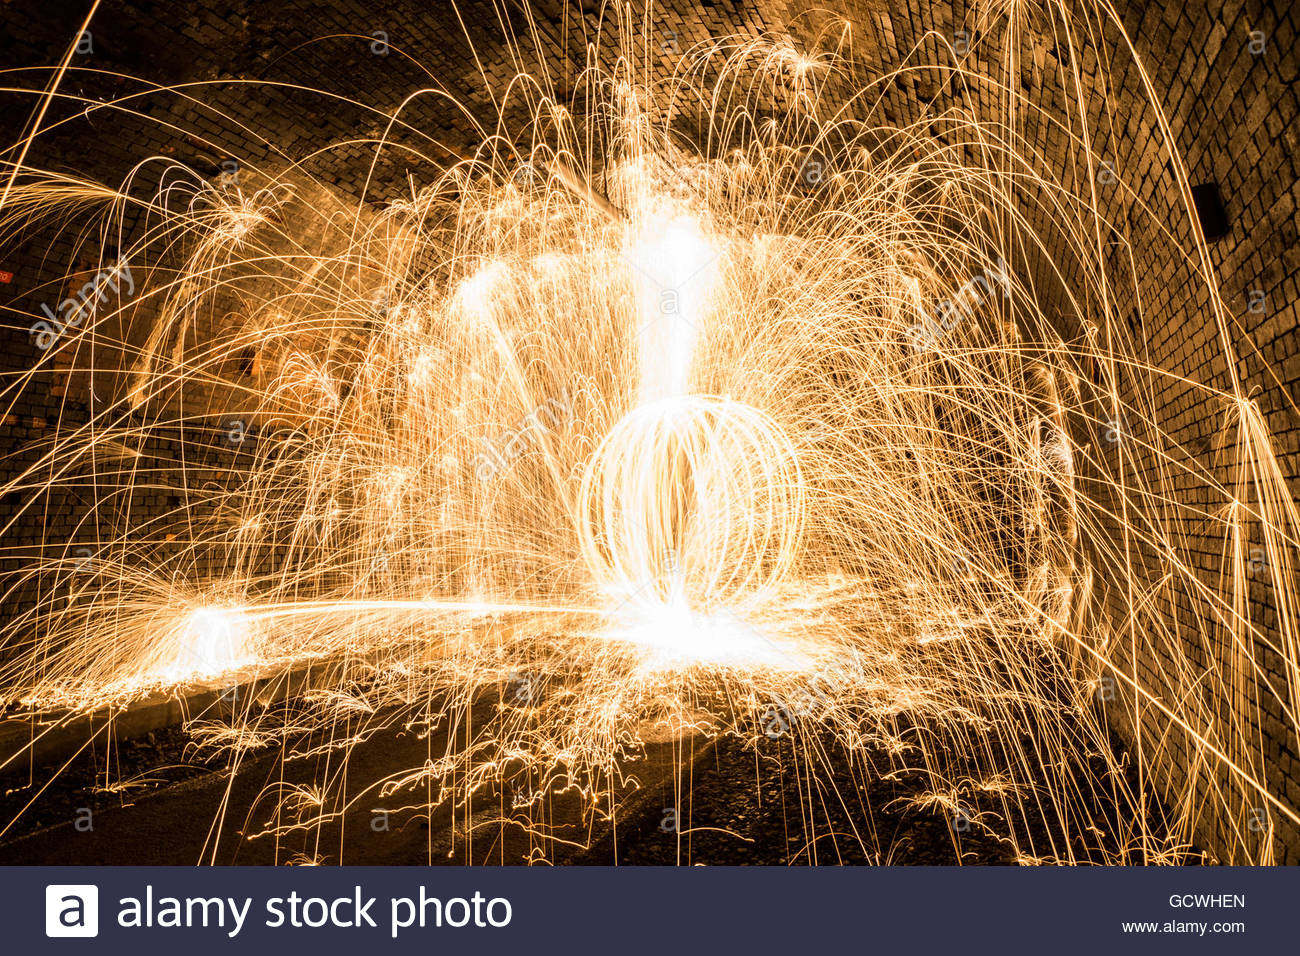 Cressbrook Tunnel Wire Wool Burning - Stock Image